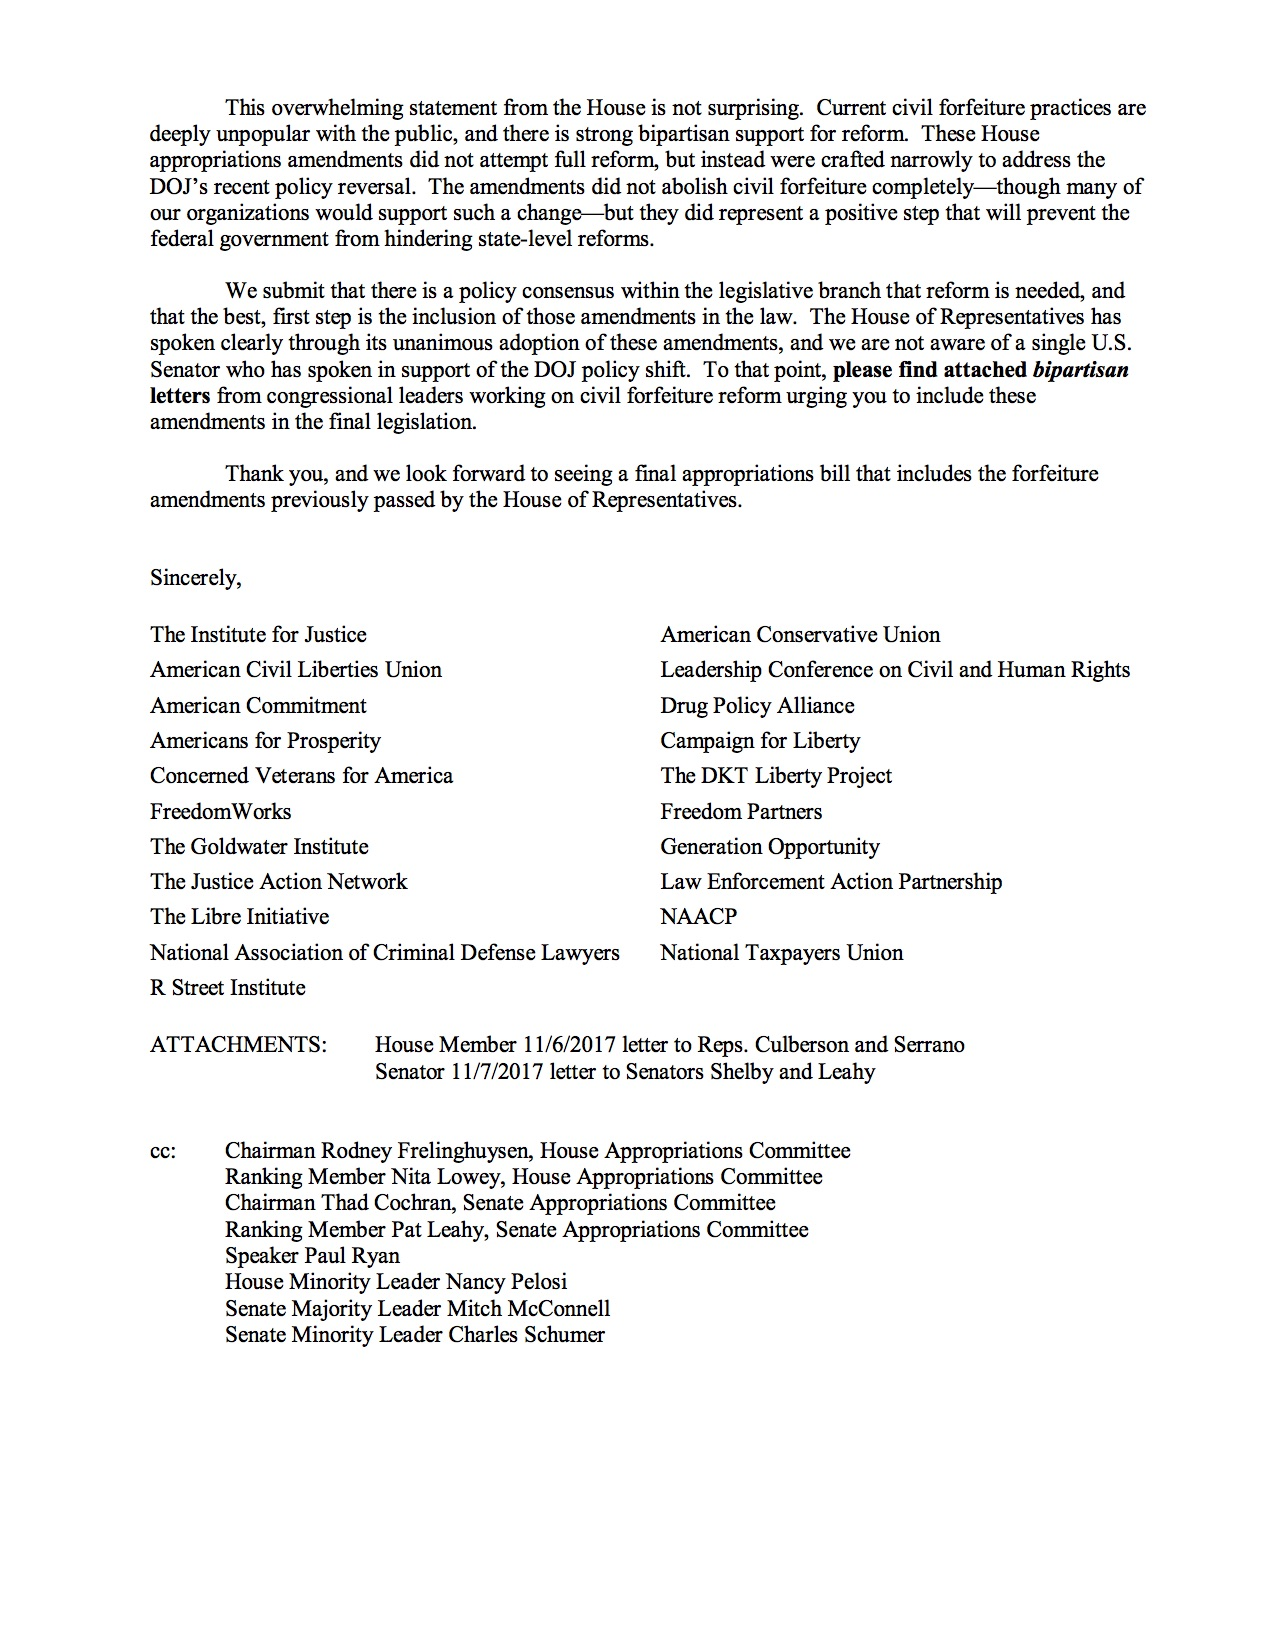 Group Of Bipartisan Organizations Send Letter To Congress In Support